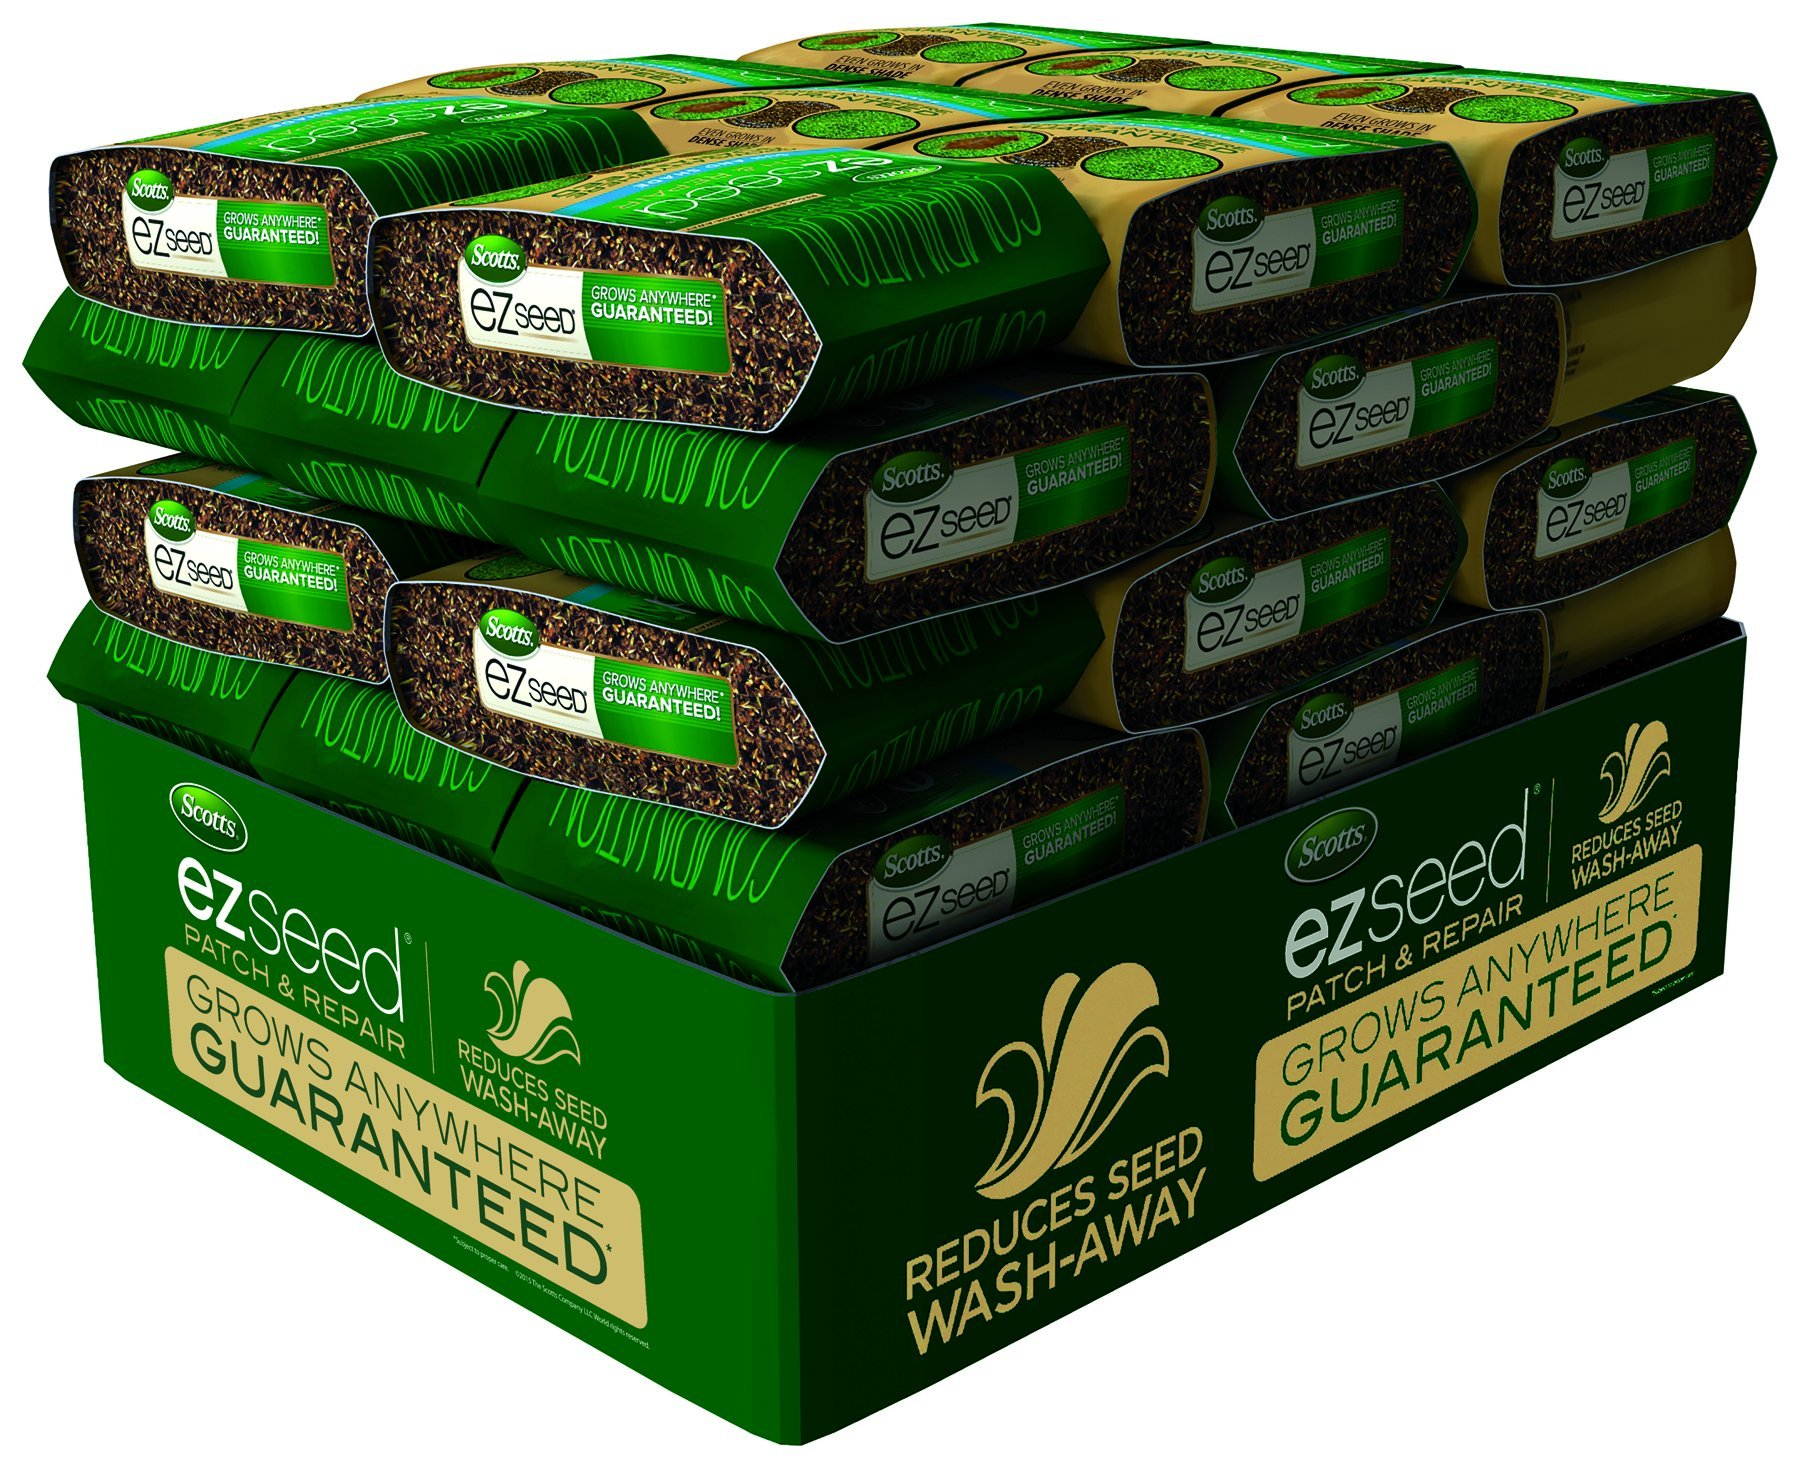 Scotts 17519 EZ Tall Fescue Grass Seed Mix (4 Pack), 10 lb